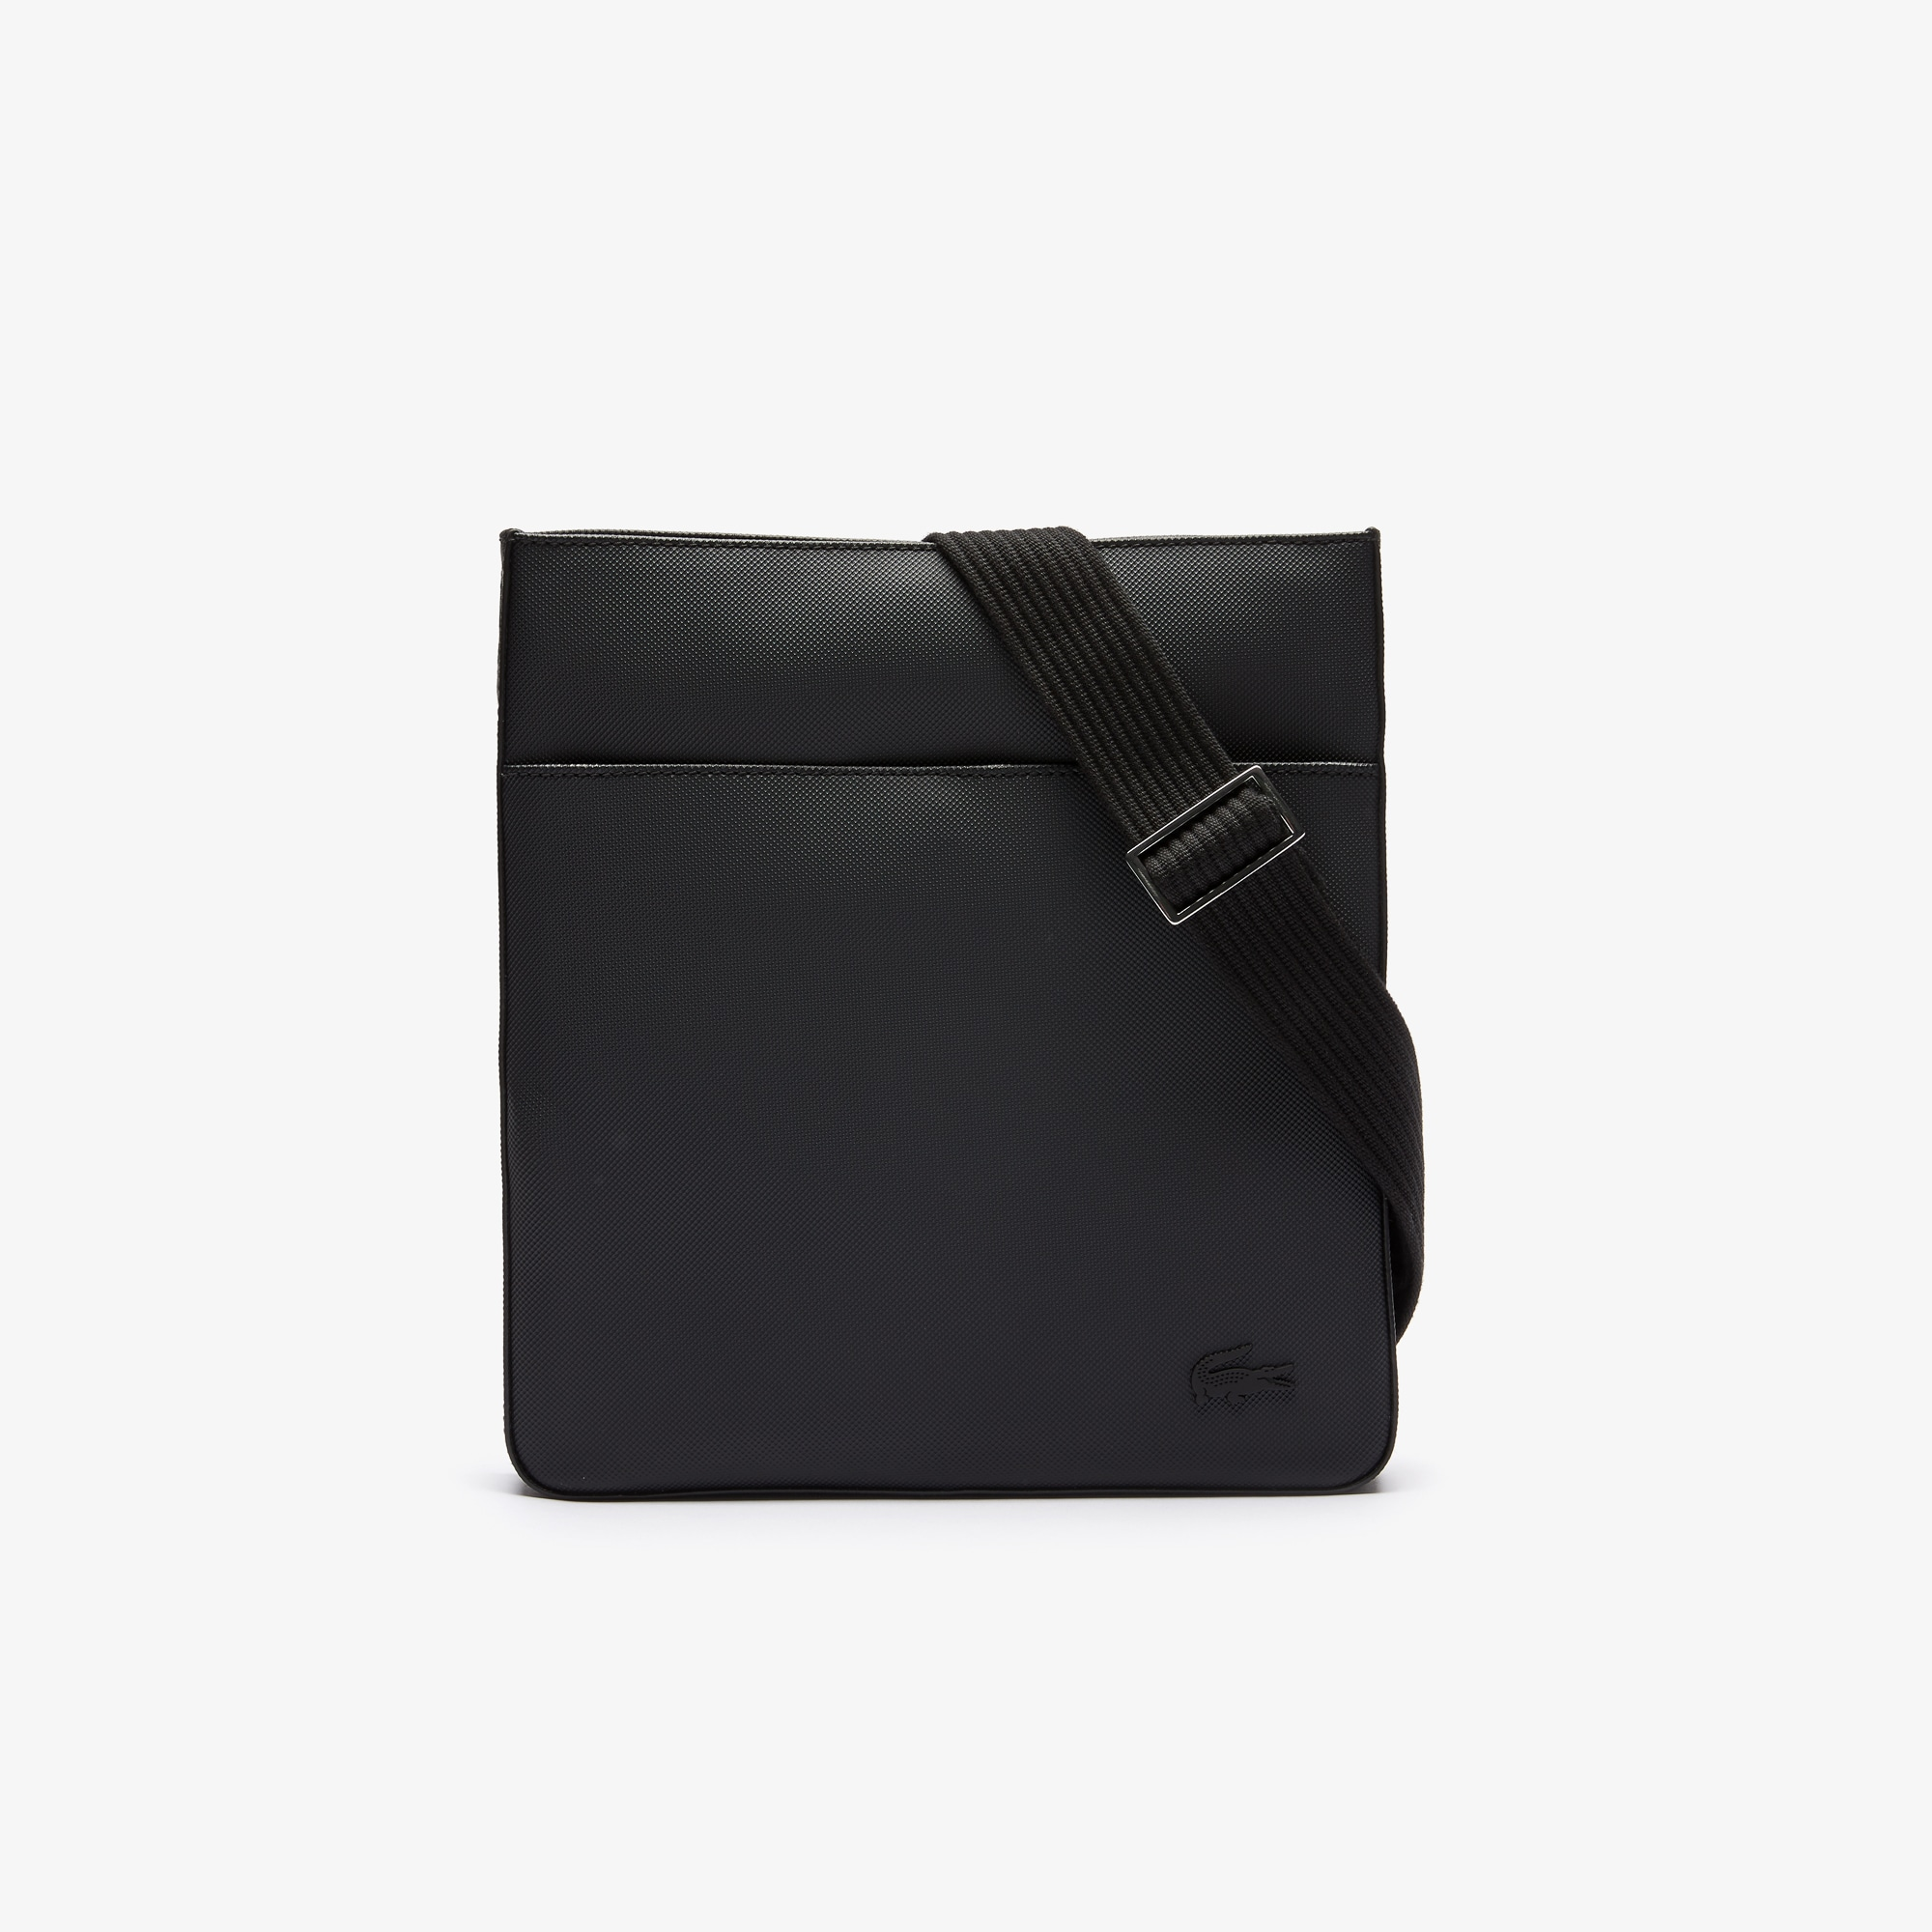 7752d919f9 Backpacks & Bags for men | Leather goods | LACOSTE